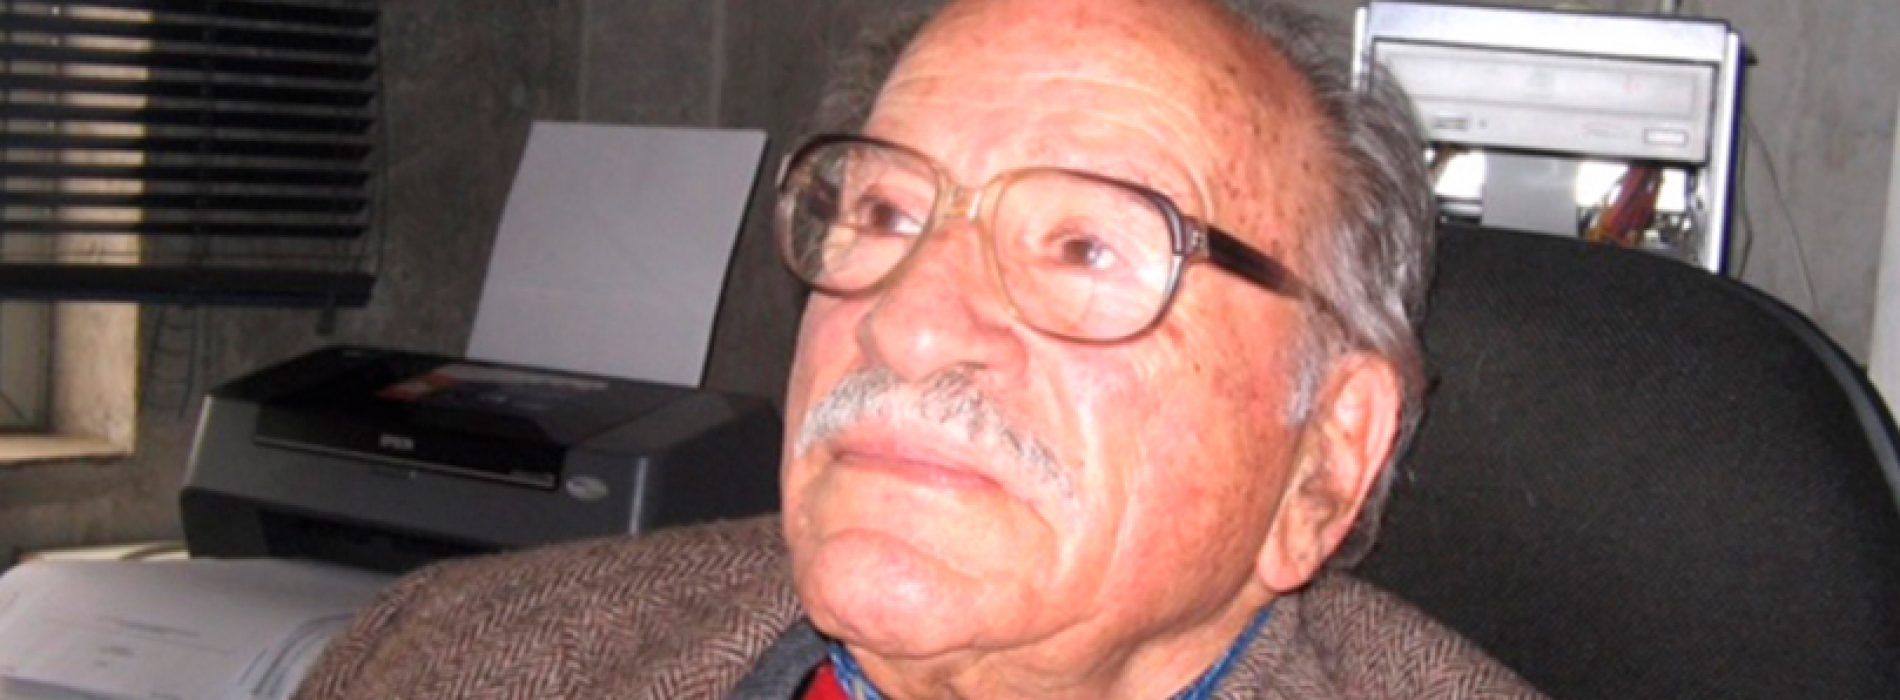 Mario Luxoro, two years after his death